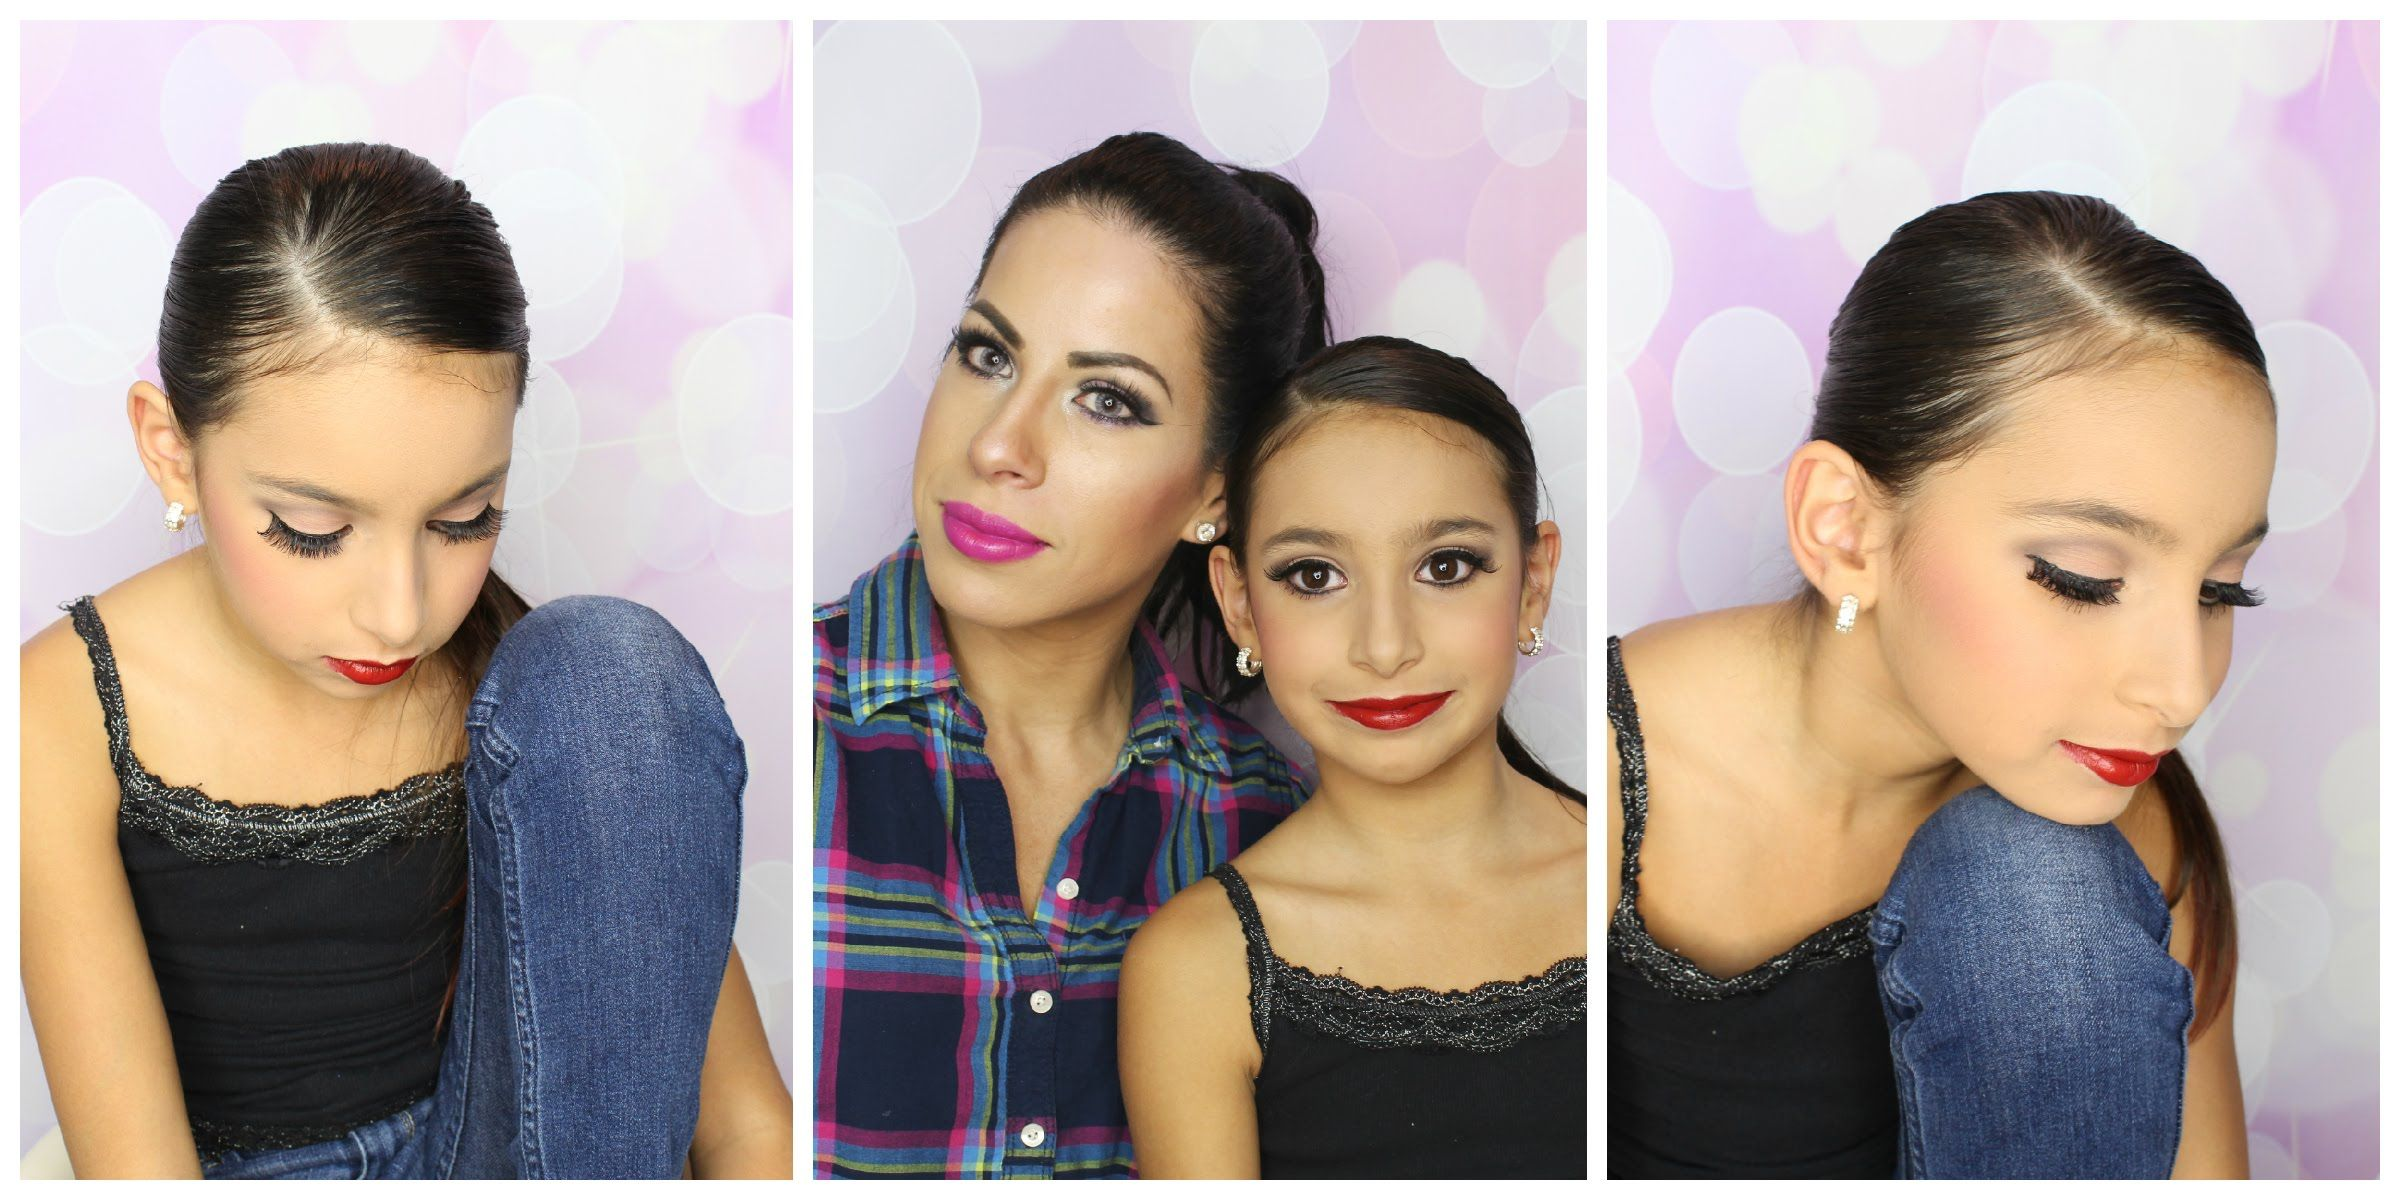 DANCE RECITAL MAKEUP AND HAIR TUTORIAL, MAKE UP FOR THE